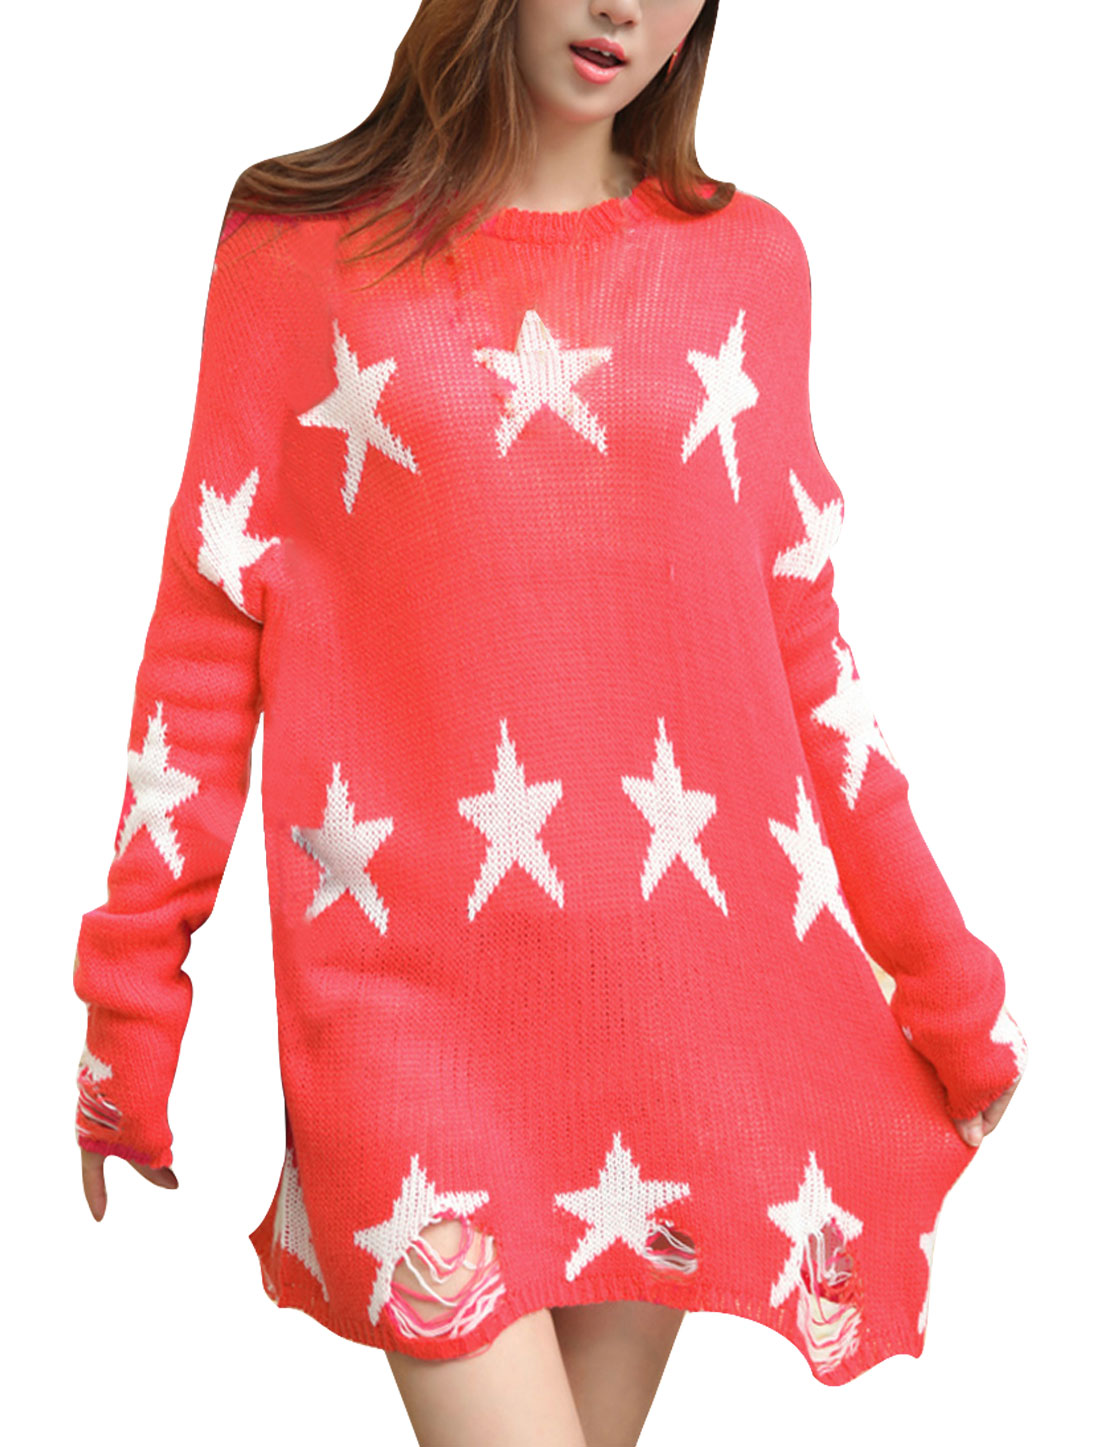 Women's Pullover Casual Stars Pattern Stretchy Loose Watermelon Red Sweater S